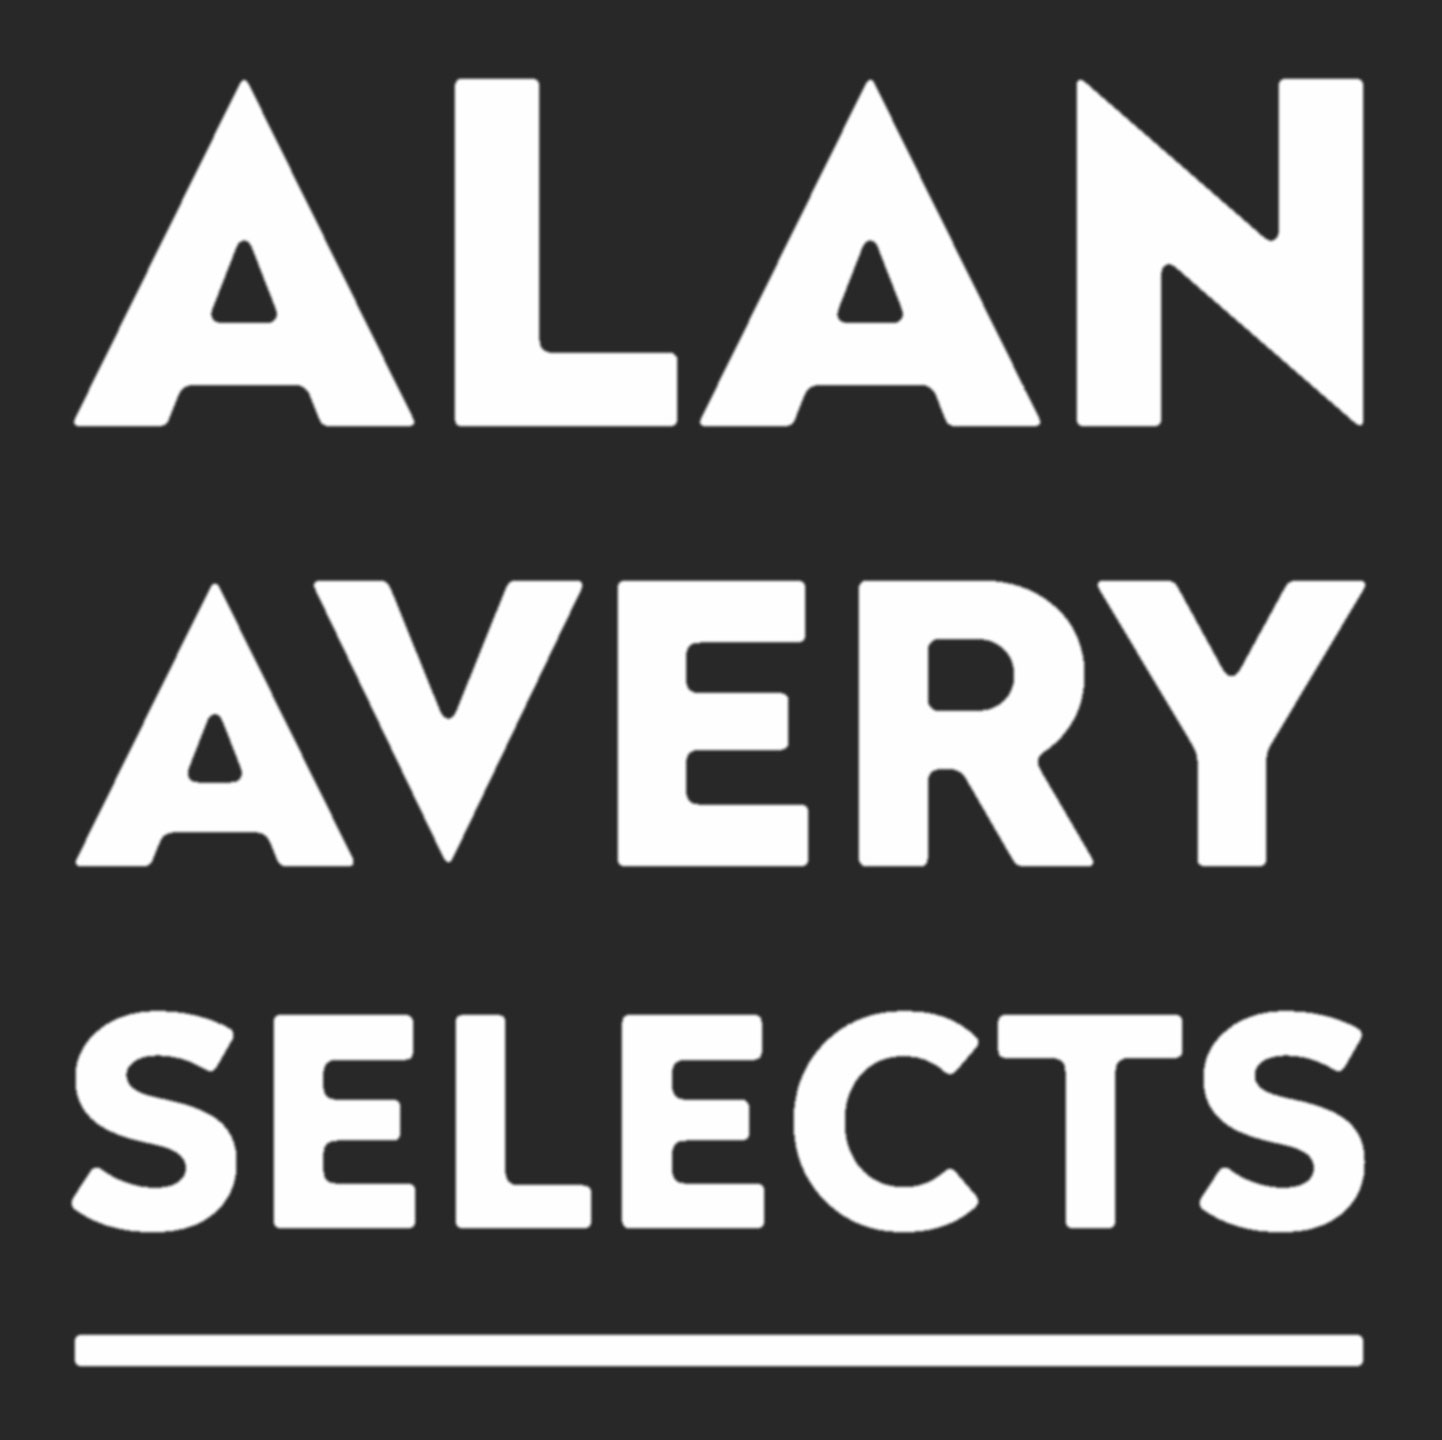 Alan-Avery-Selects-03.jpg